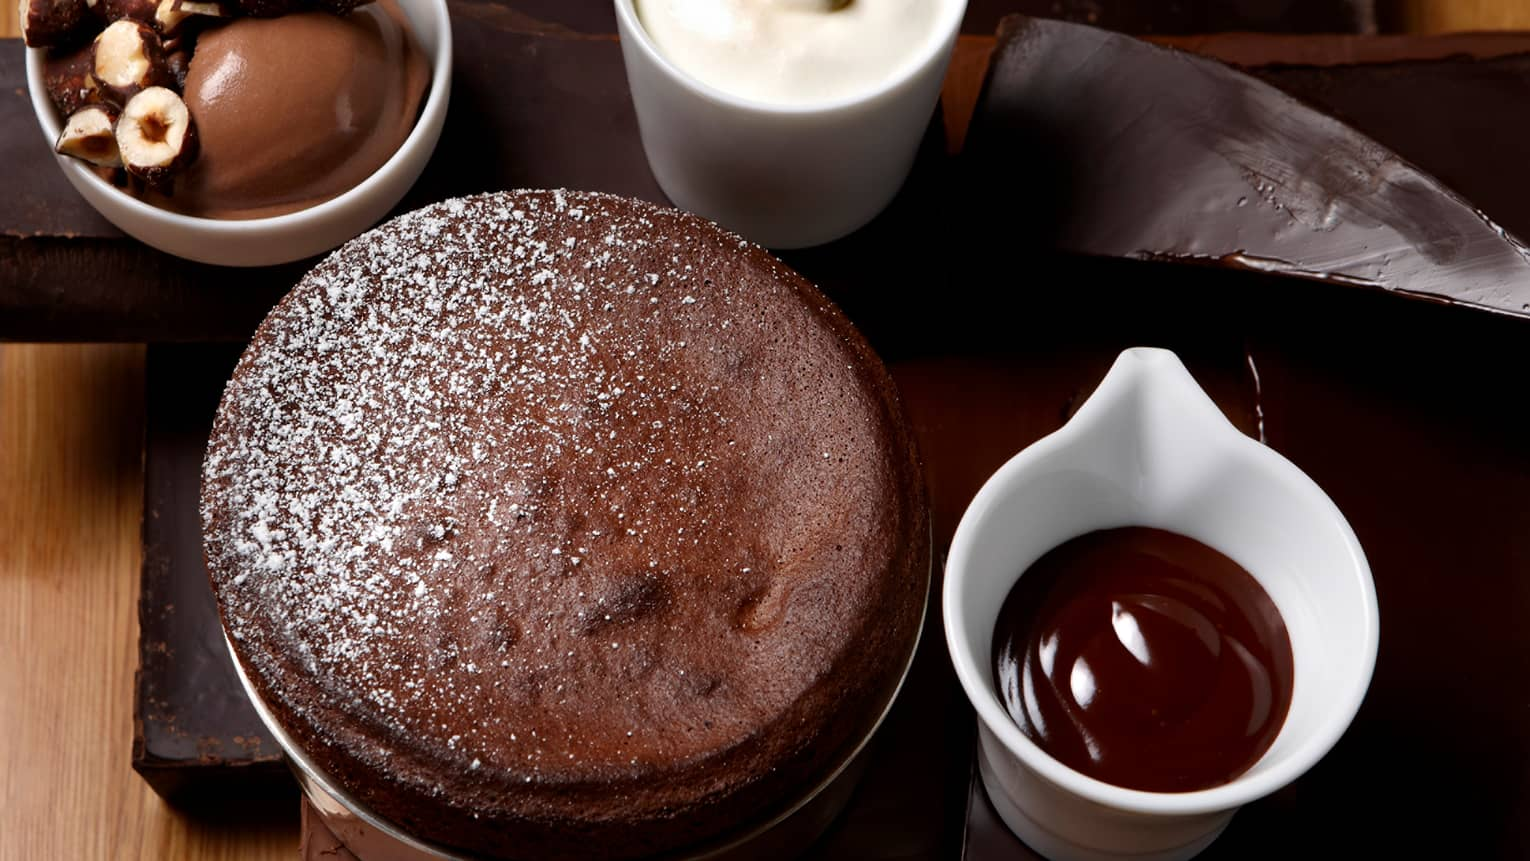 Round dark chocolate soufflé, white dish with warm ganache